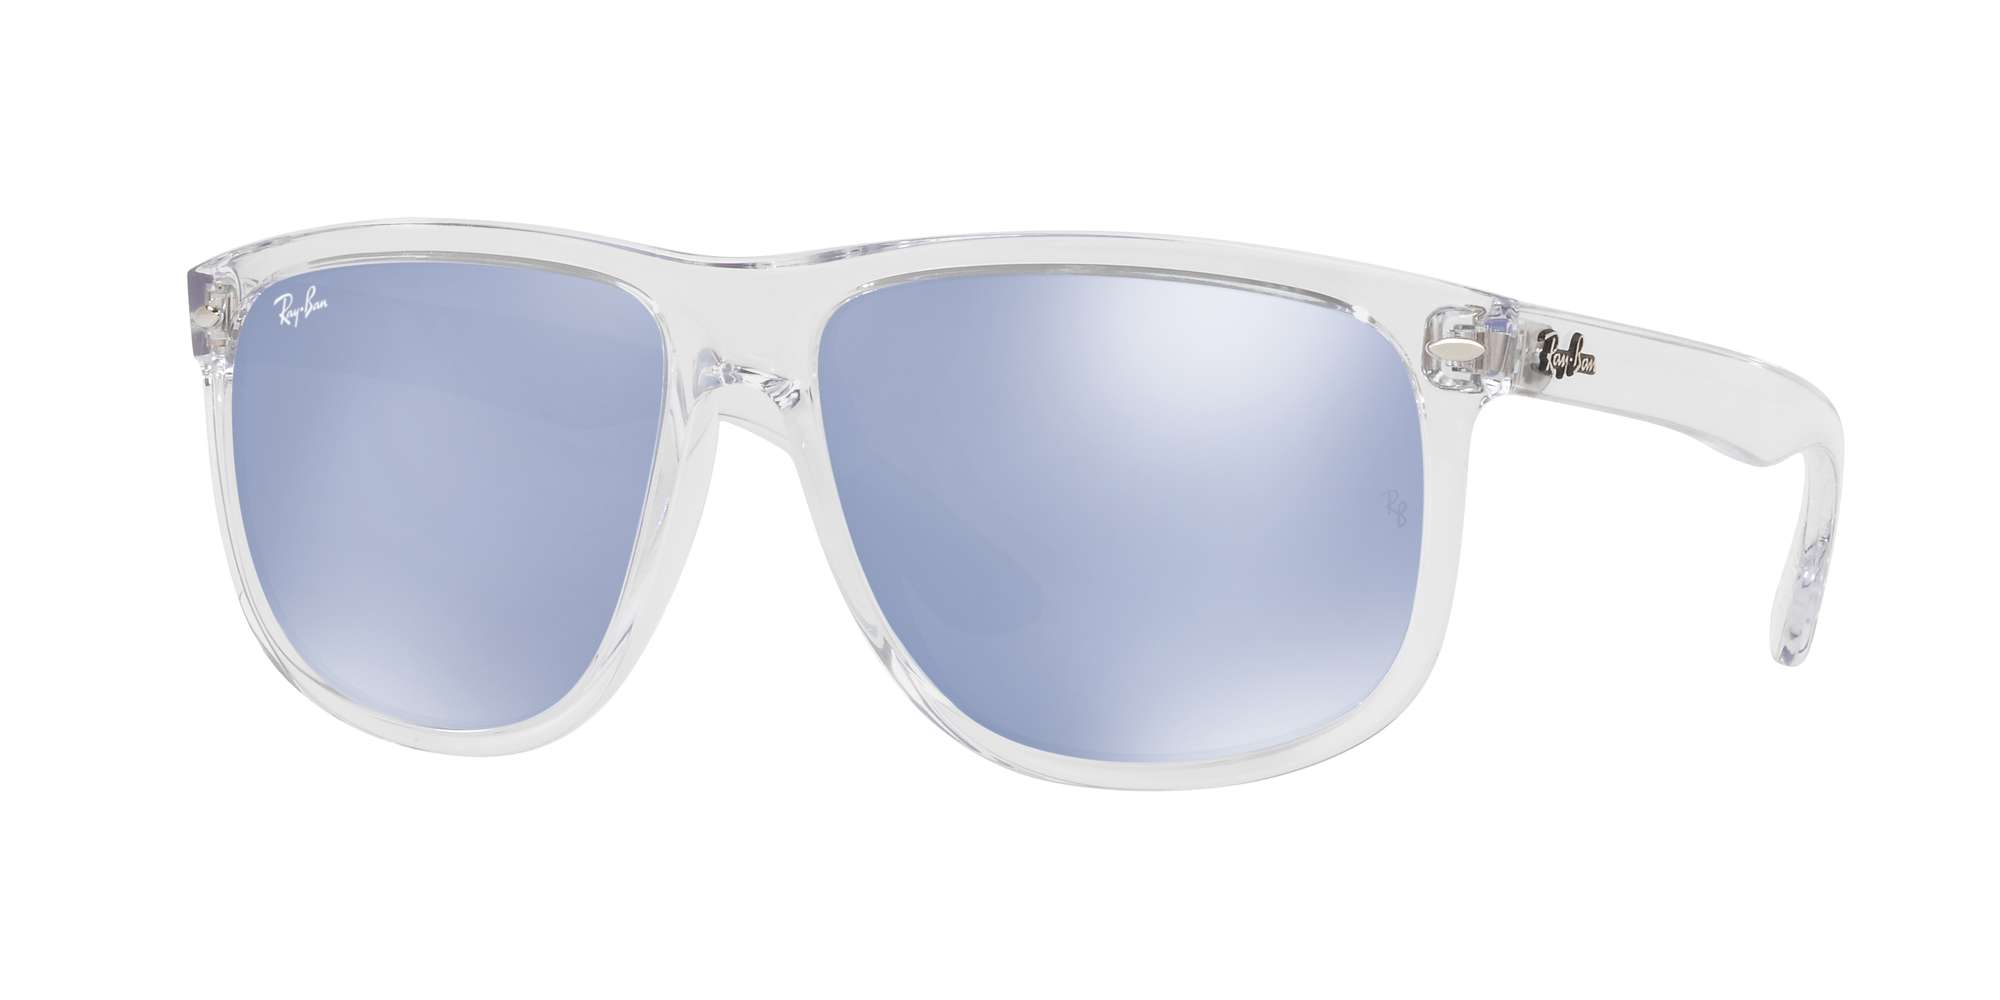 TRASPARENT / BLUE FLASH SILVER lenses